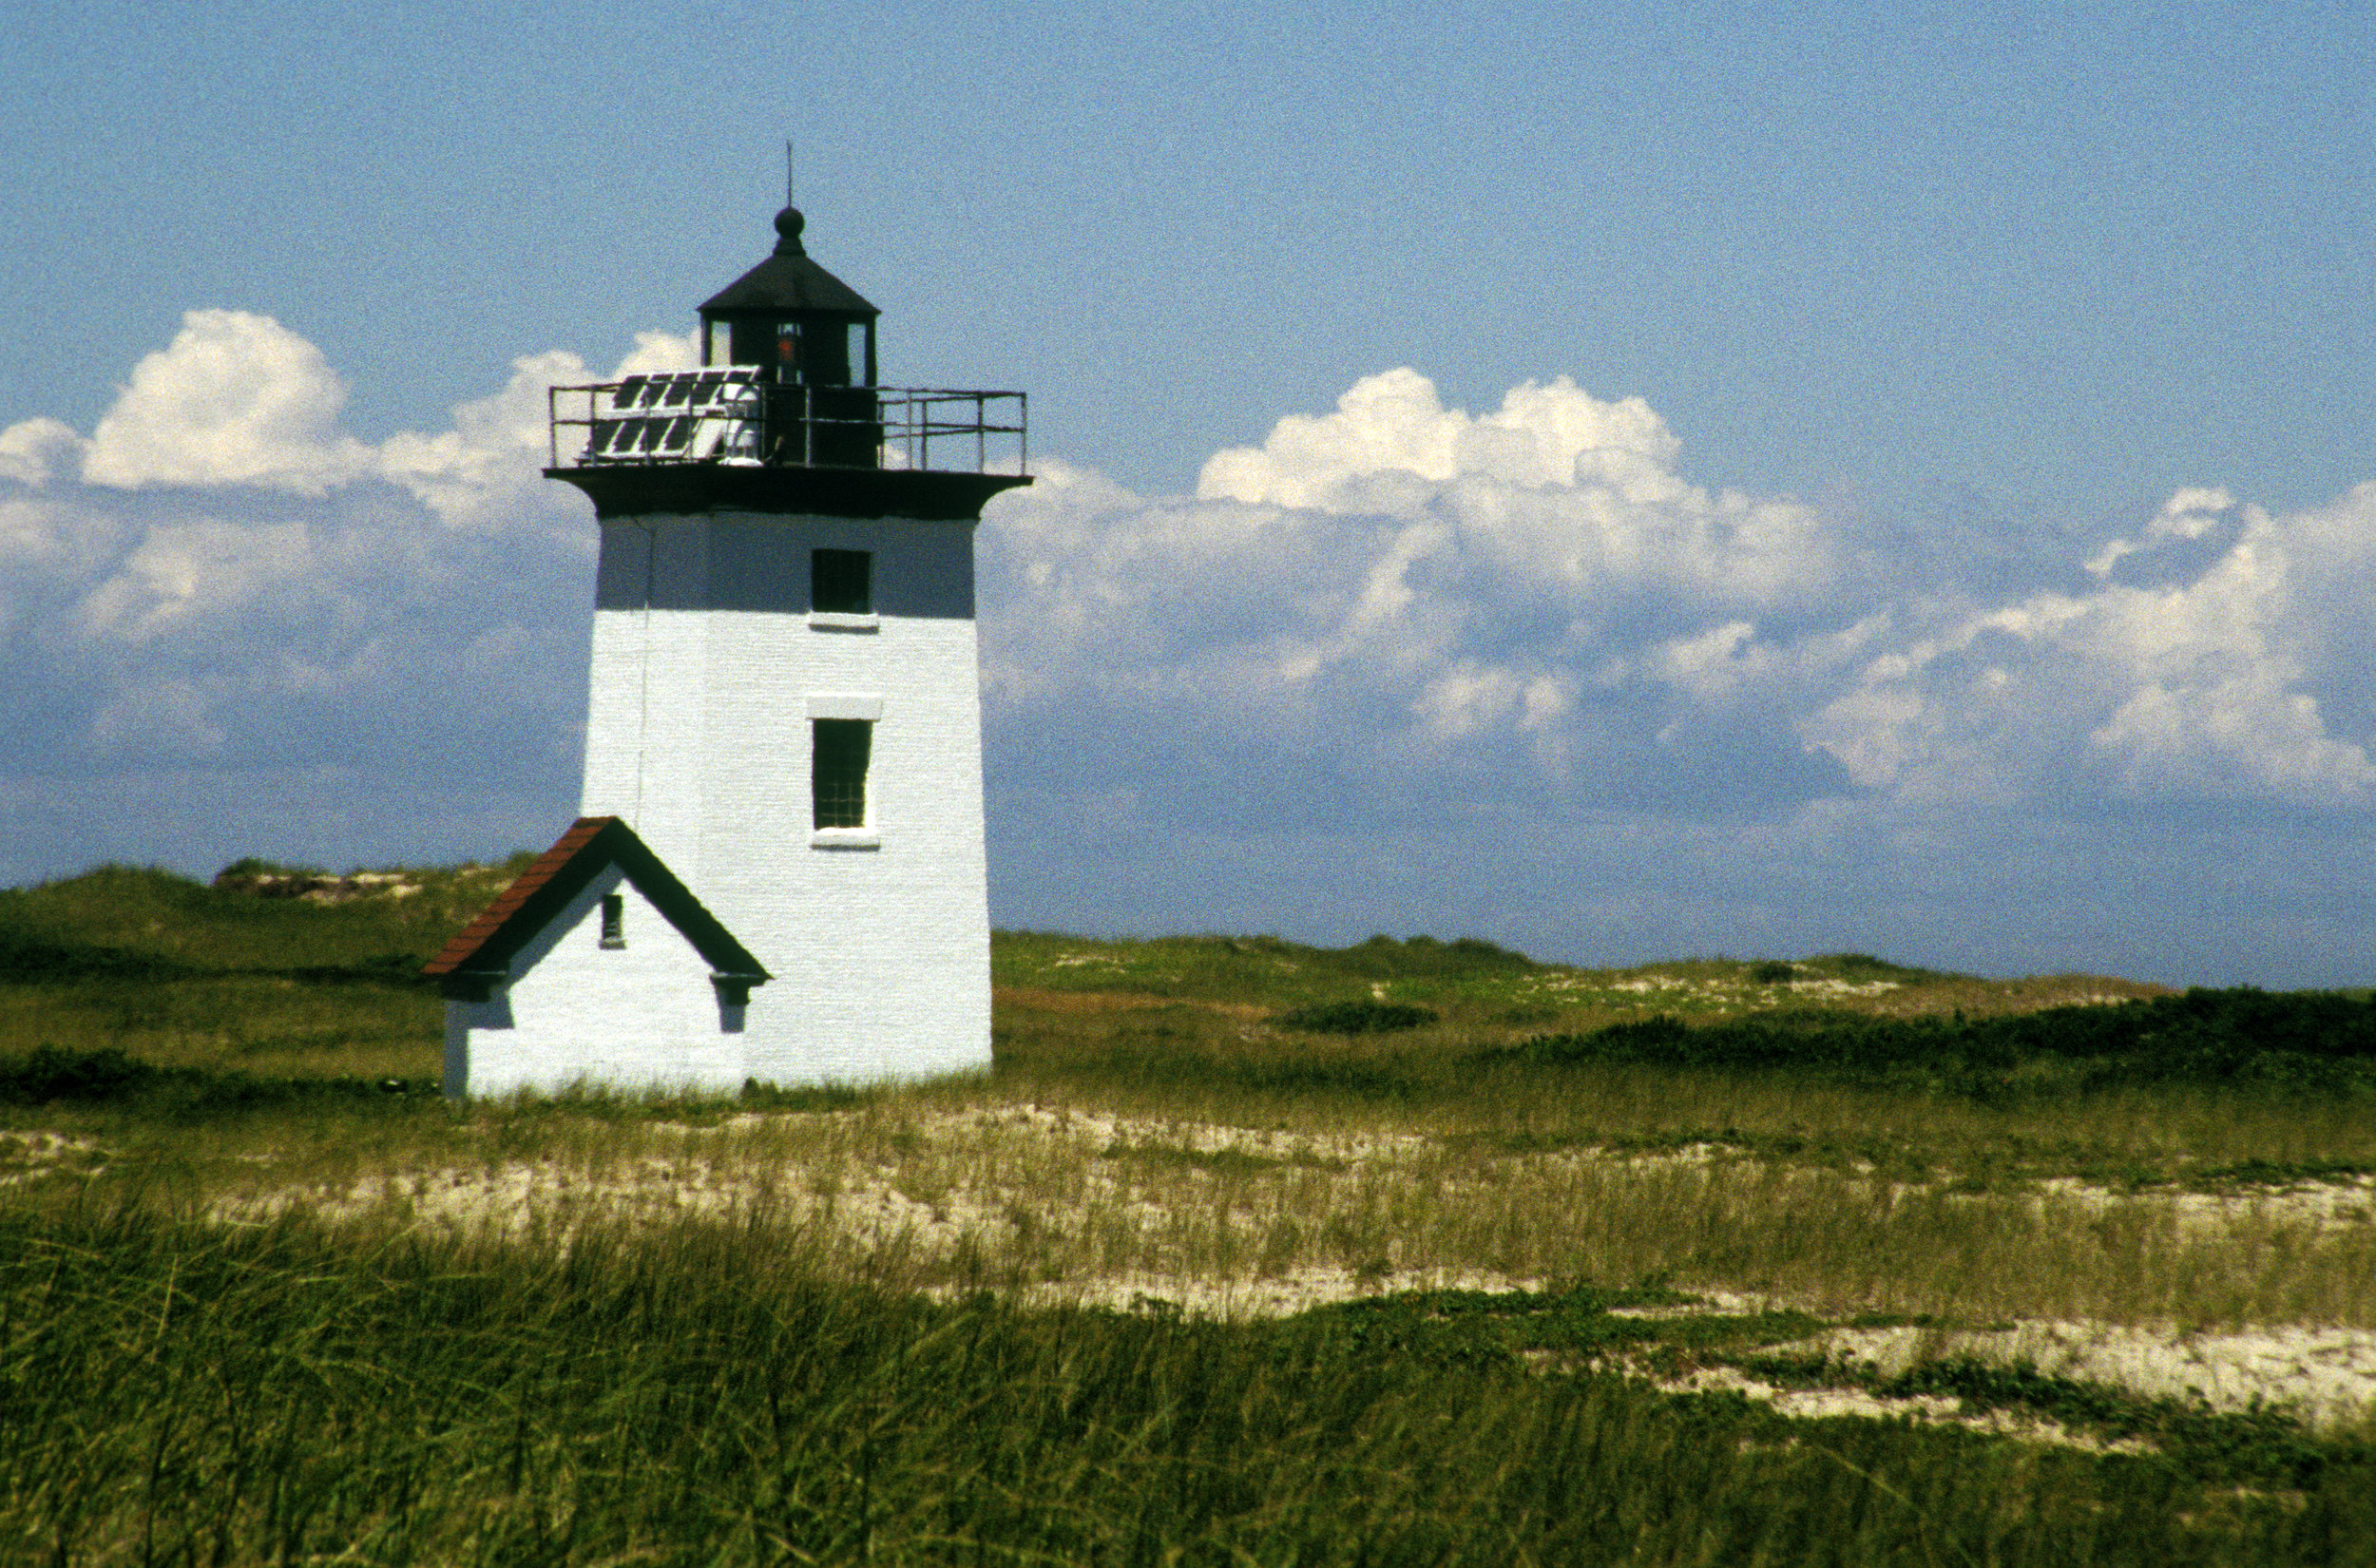 Ptown-Lighthouse-C3.jpg